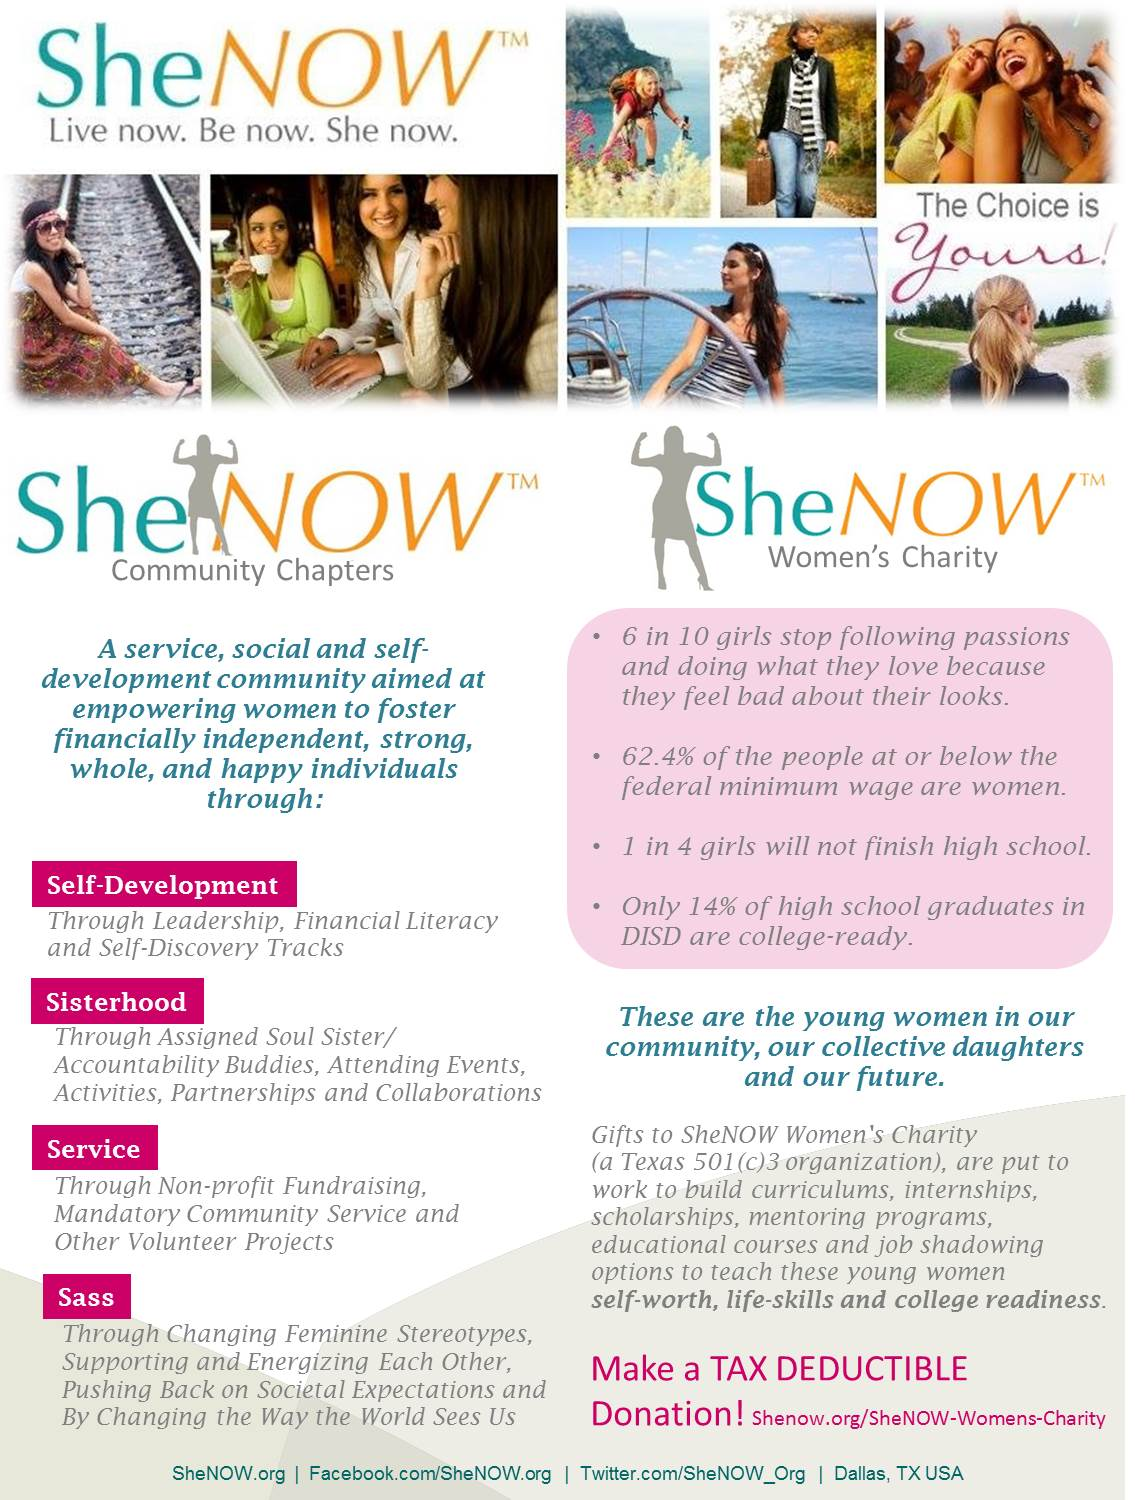 SheNOW and SheNOW Womens Charity Info Sheet jpg